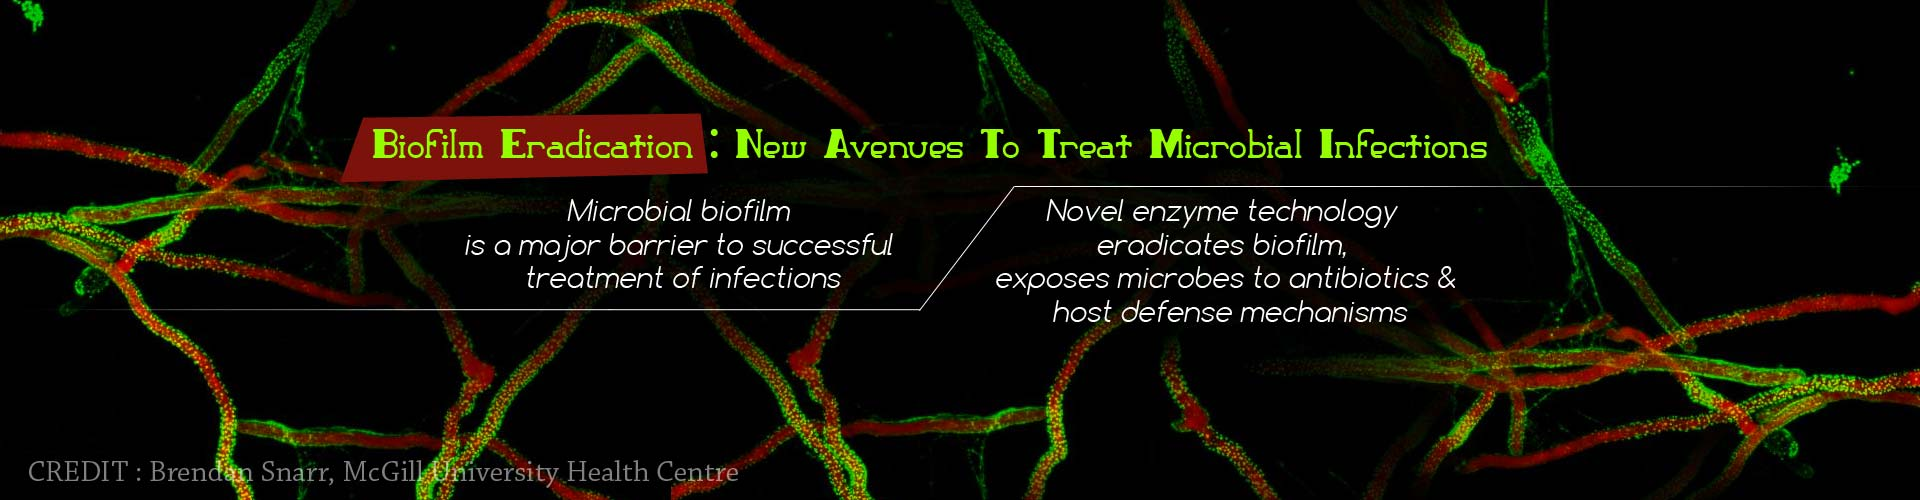 Biofilm Eradication: New avenues to treat microbial infections